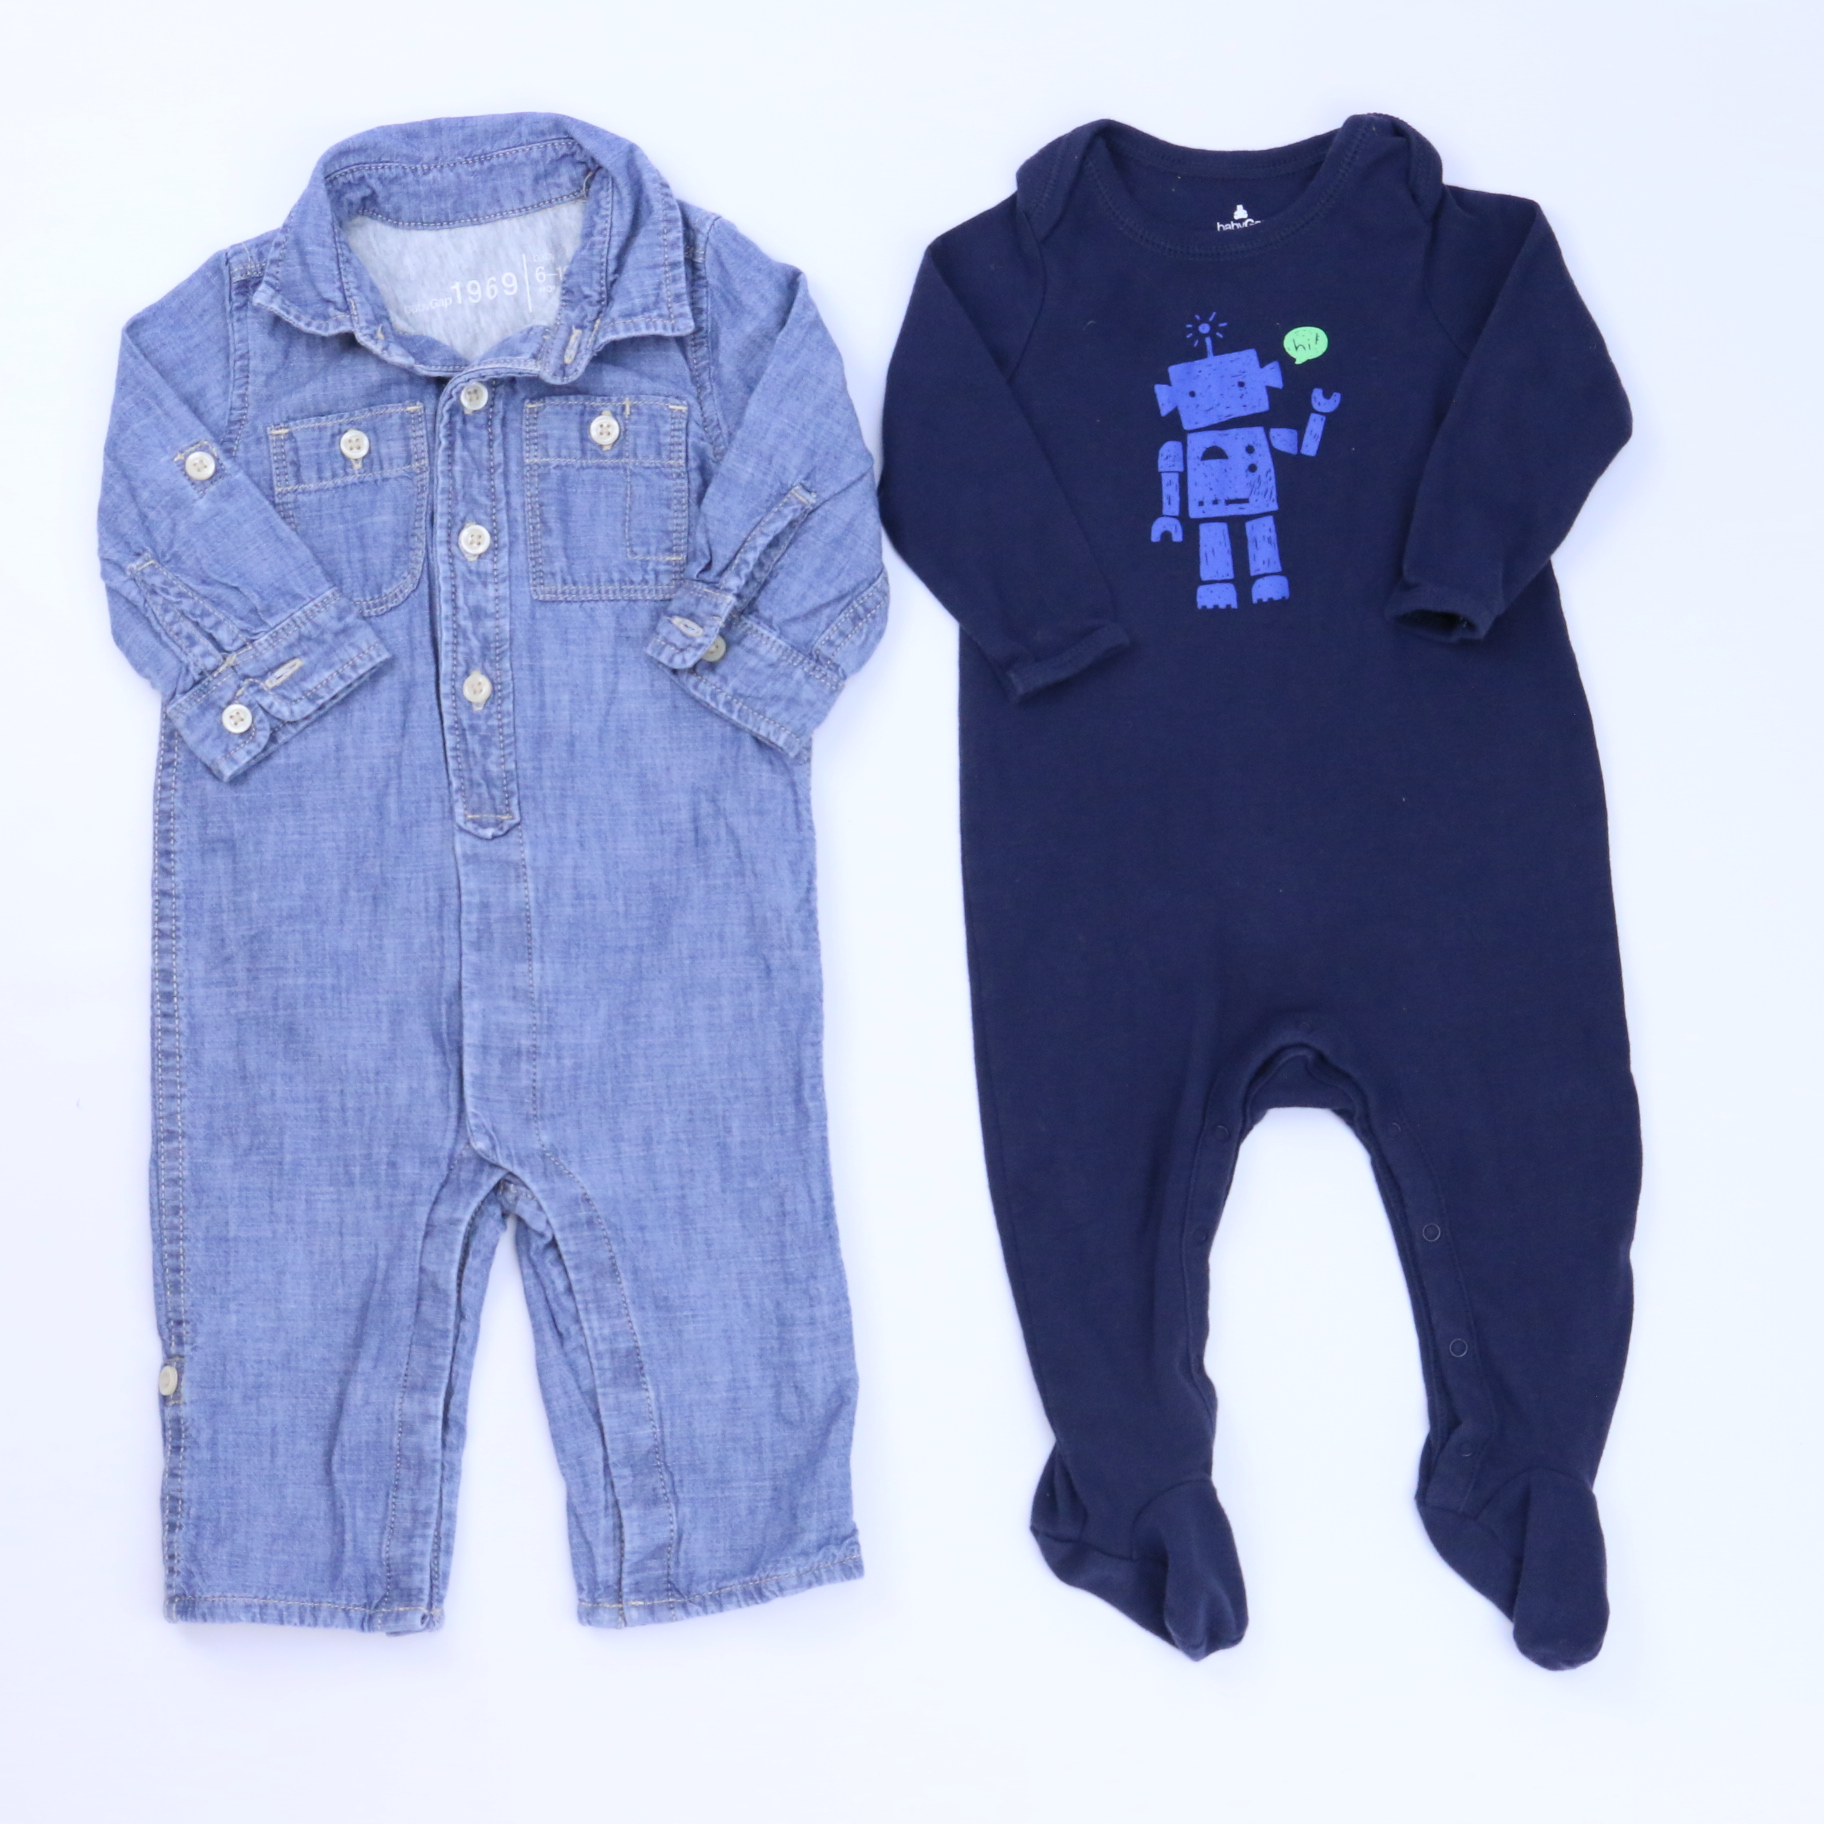 b6a0c2e3b Set of 2 Long Sleeve Outfit size: 6-9 Months - The Swoondle Society